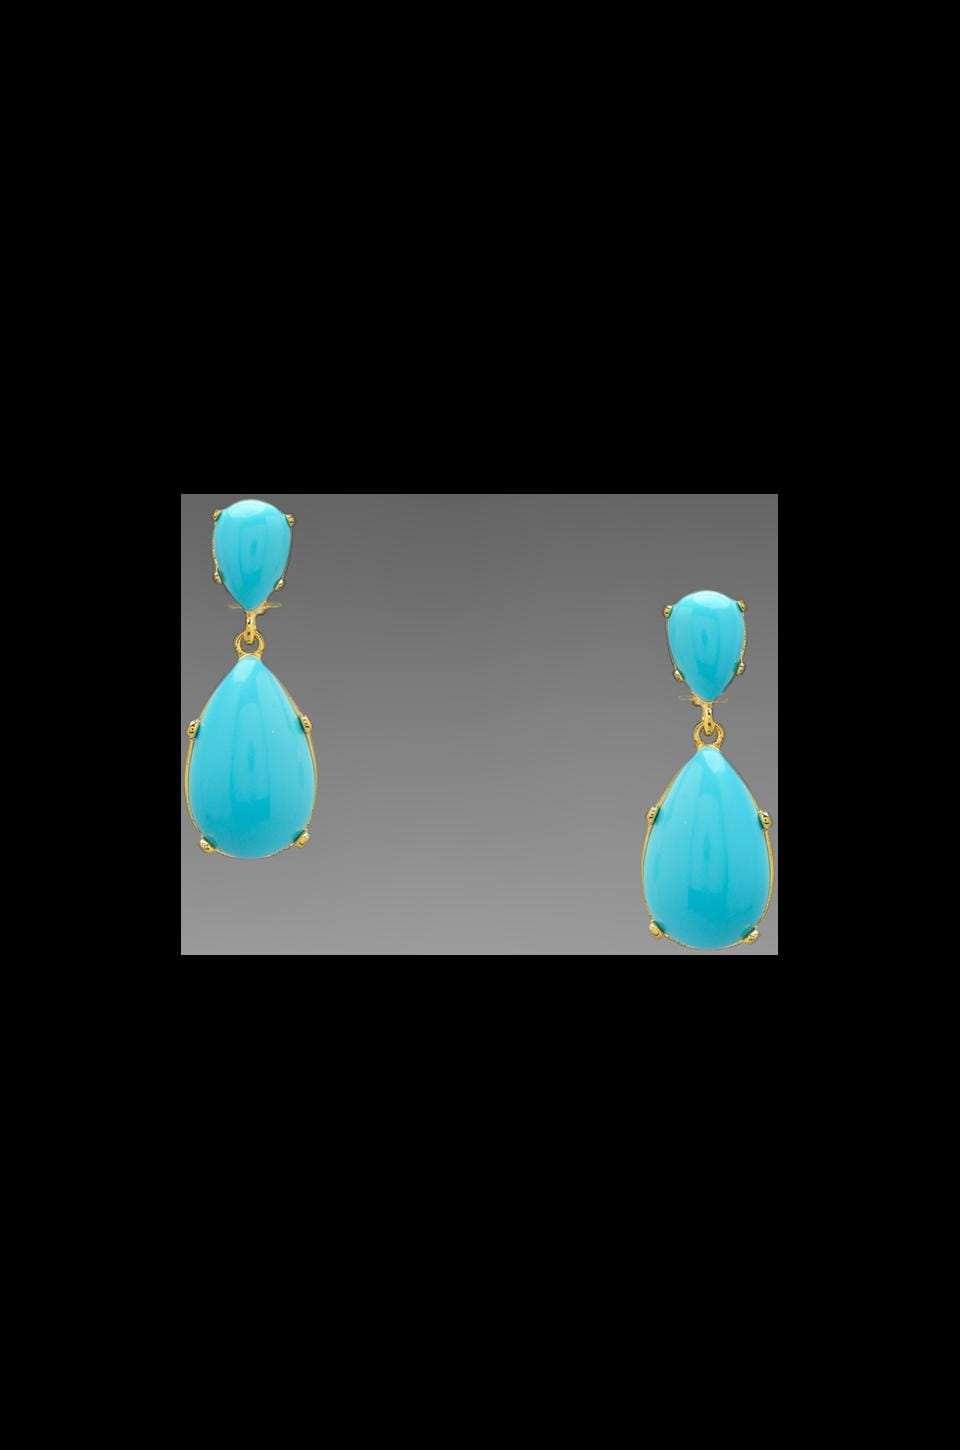 Kenneth Jay Lane Drop Clip Earring in Turquoise